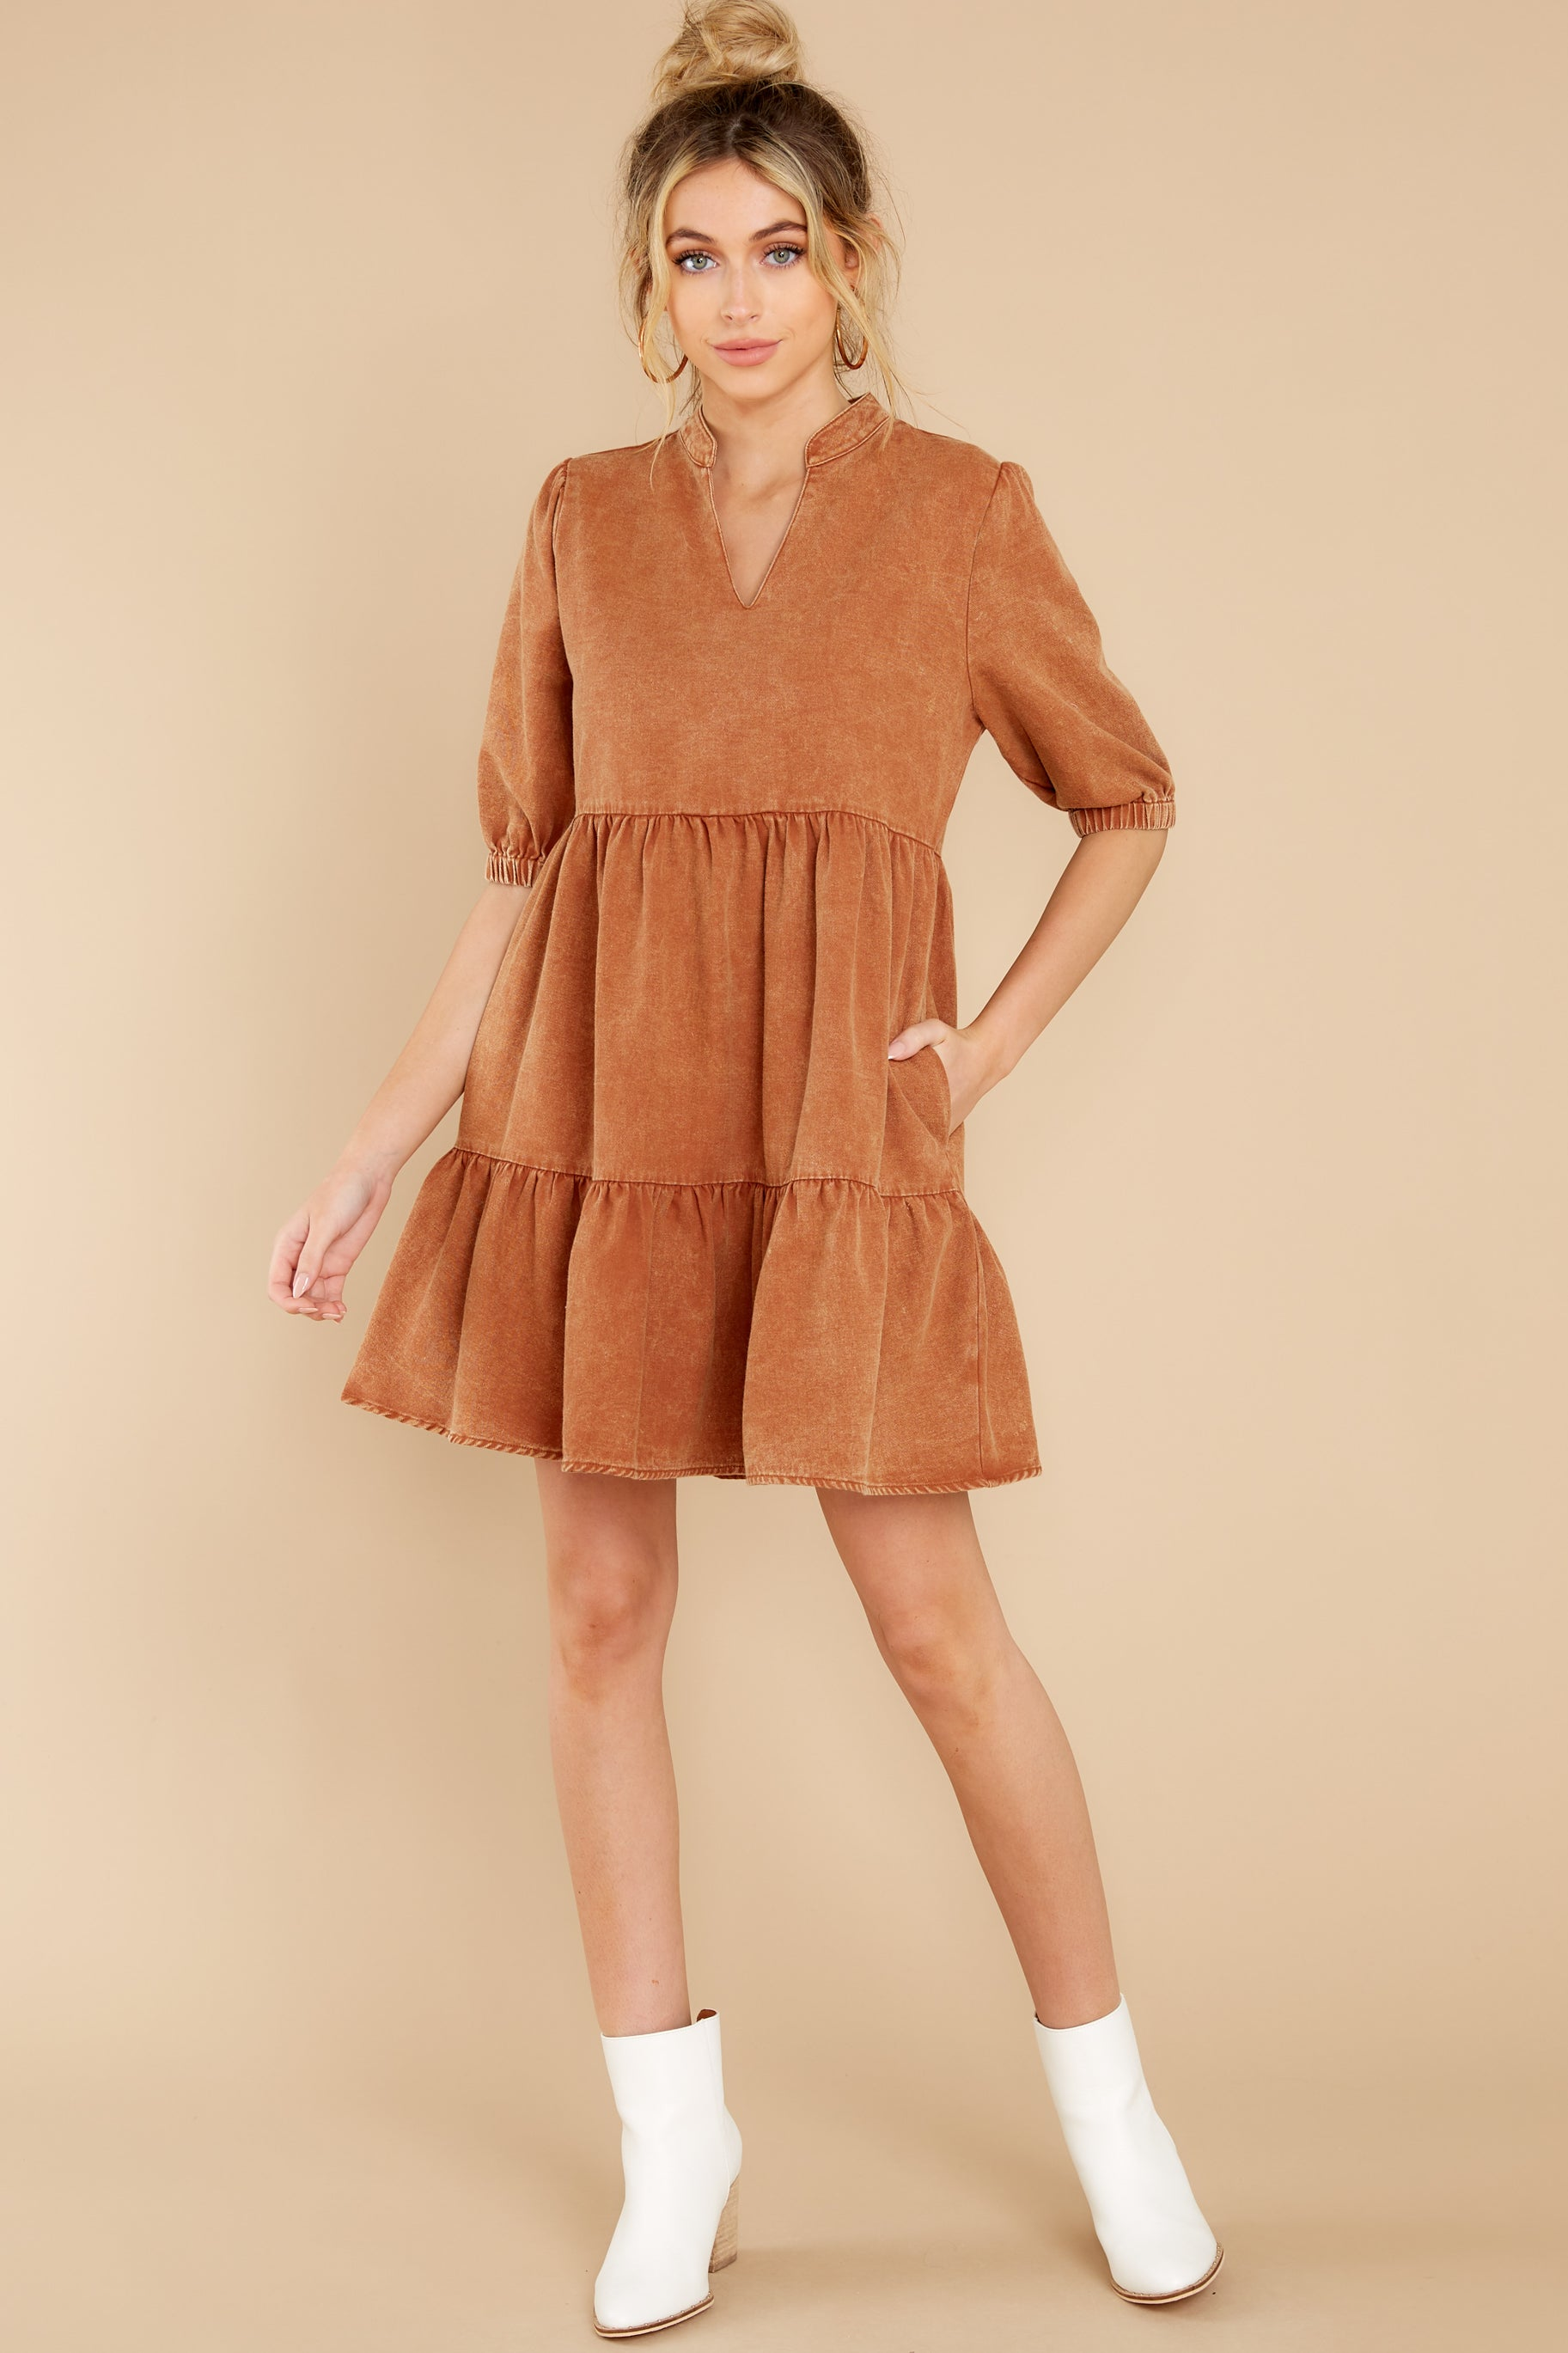 1 Not So Basic Caramel Brown Dress at reddress.com